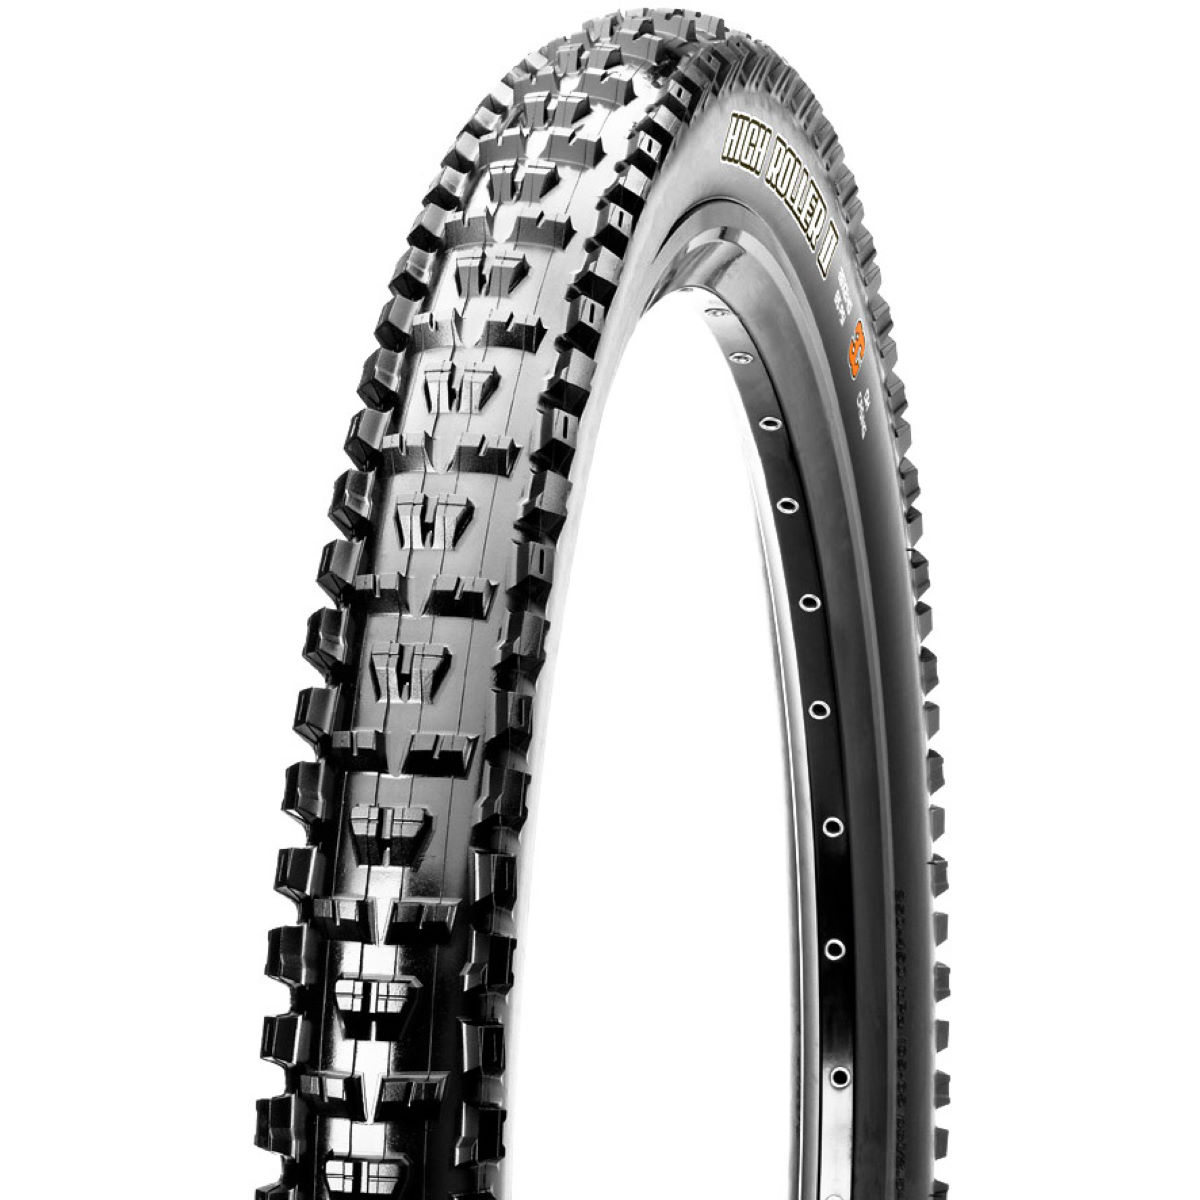 Maxxis Maxxis High Roller II Wired MTB Tyre   Tyres